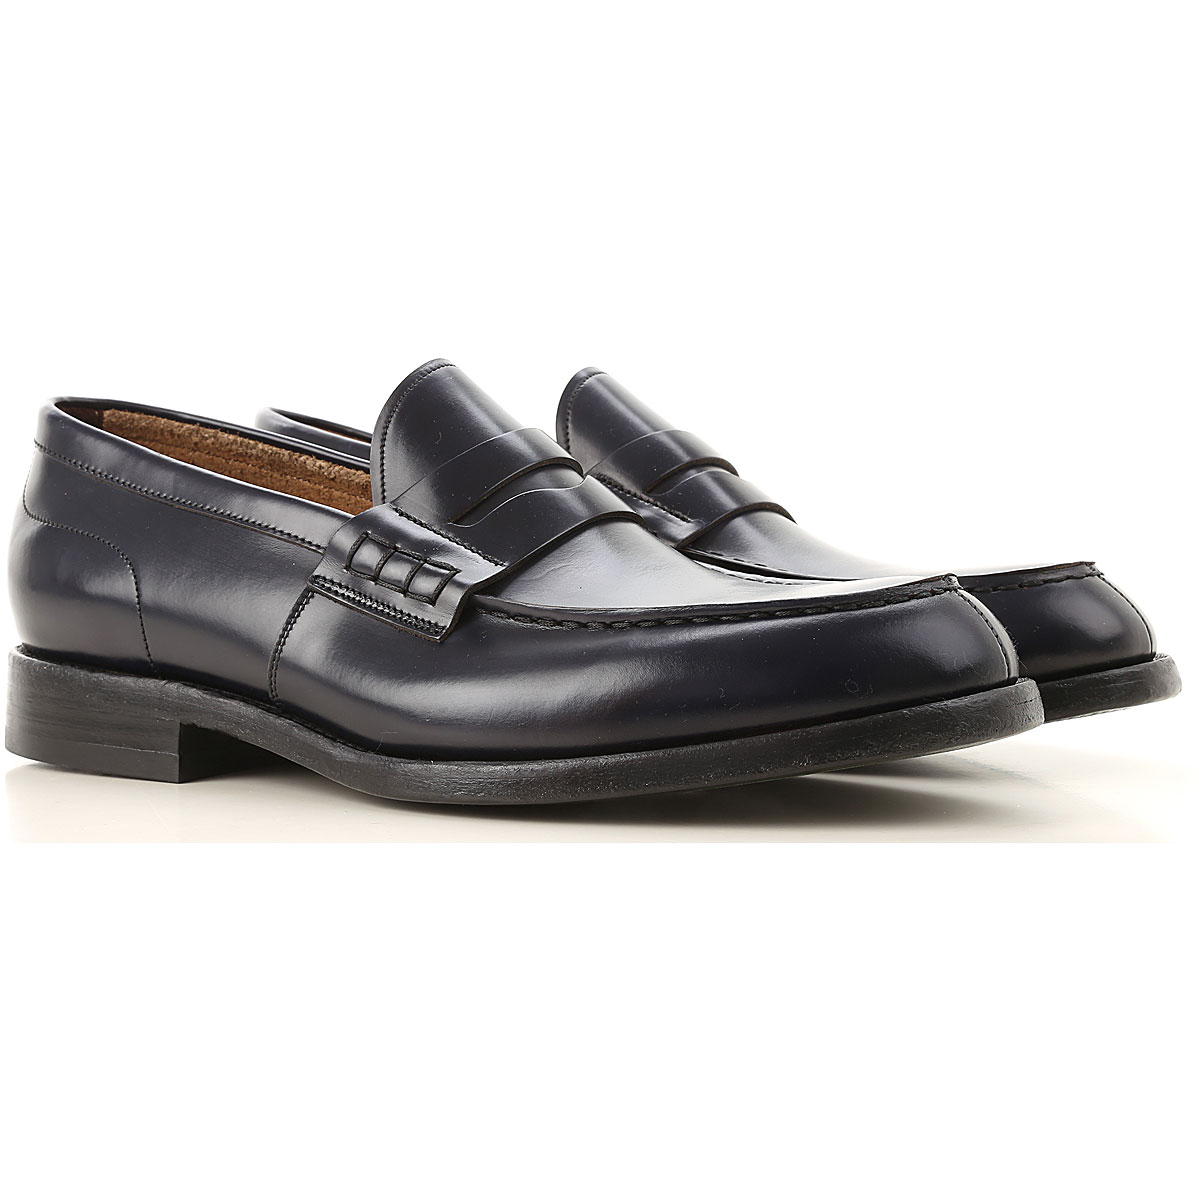 Green George Loafers for Men On Sale in Outlet, Blue Ink, Leather, 2019, 10 8